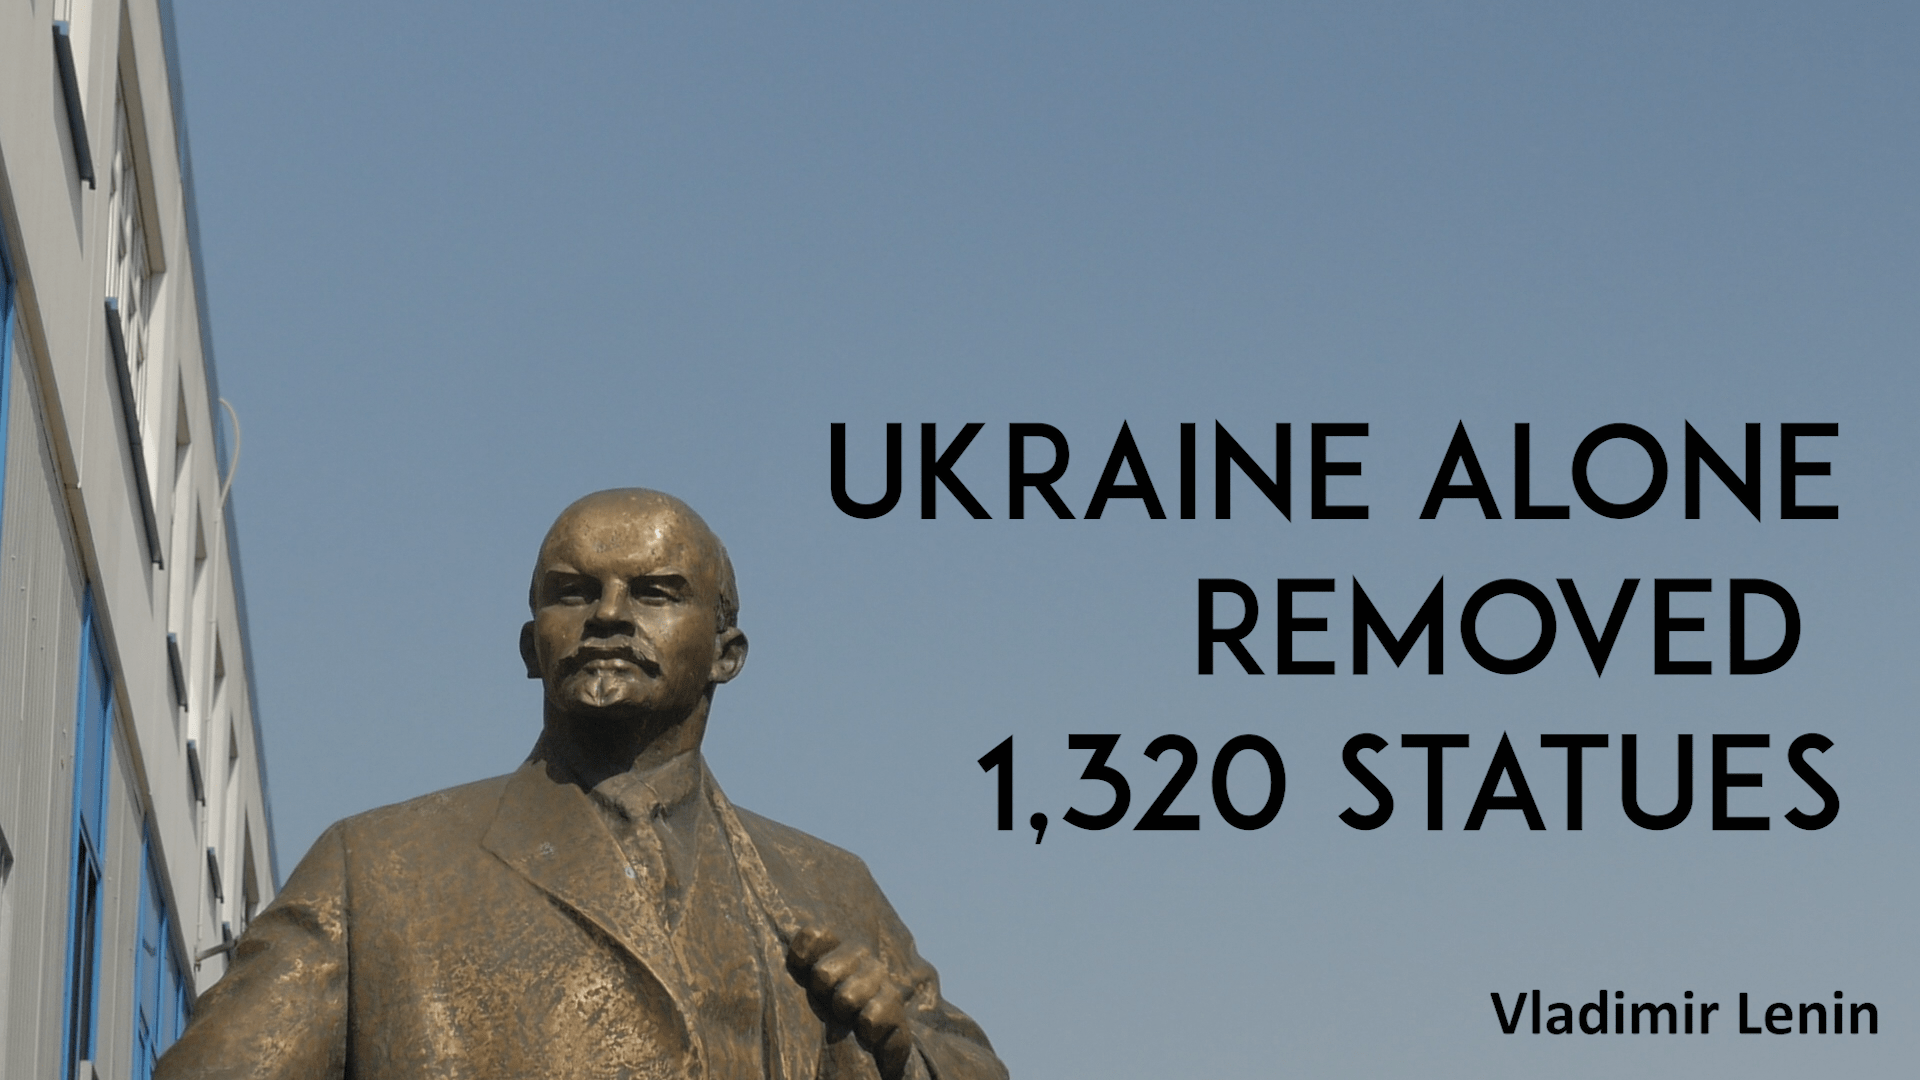 Lenin removed